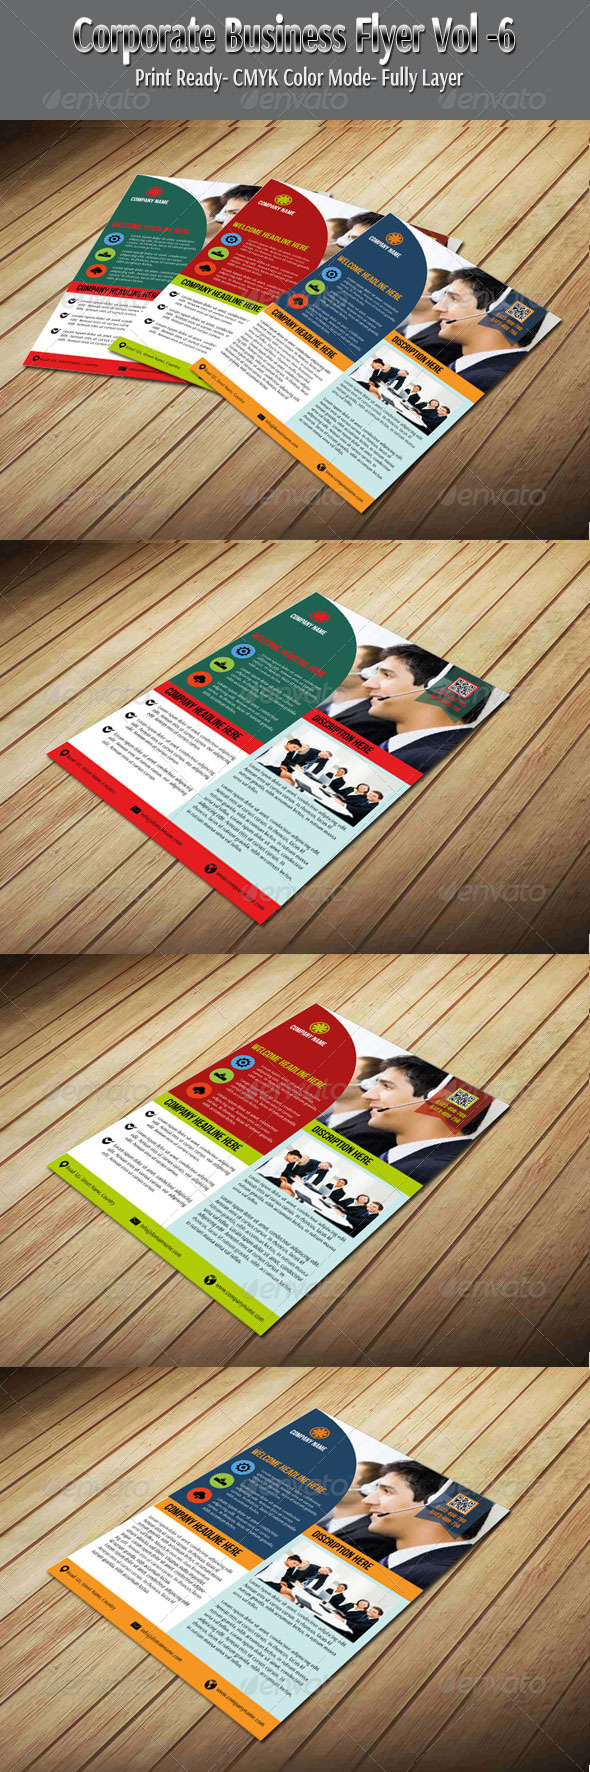 GraphicRiver Corporate Business Flyer Vol-6 6083859